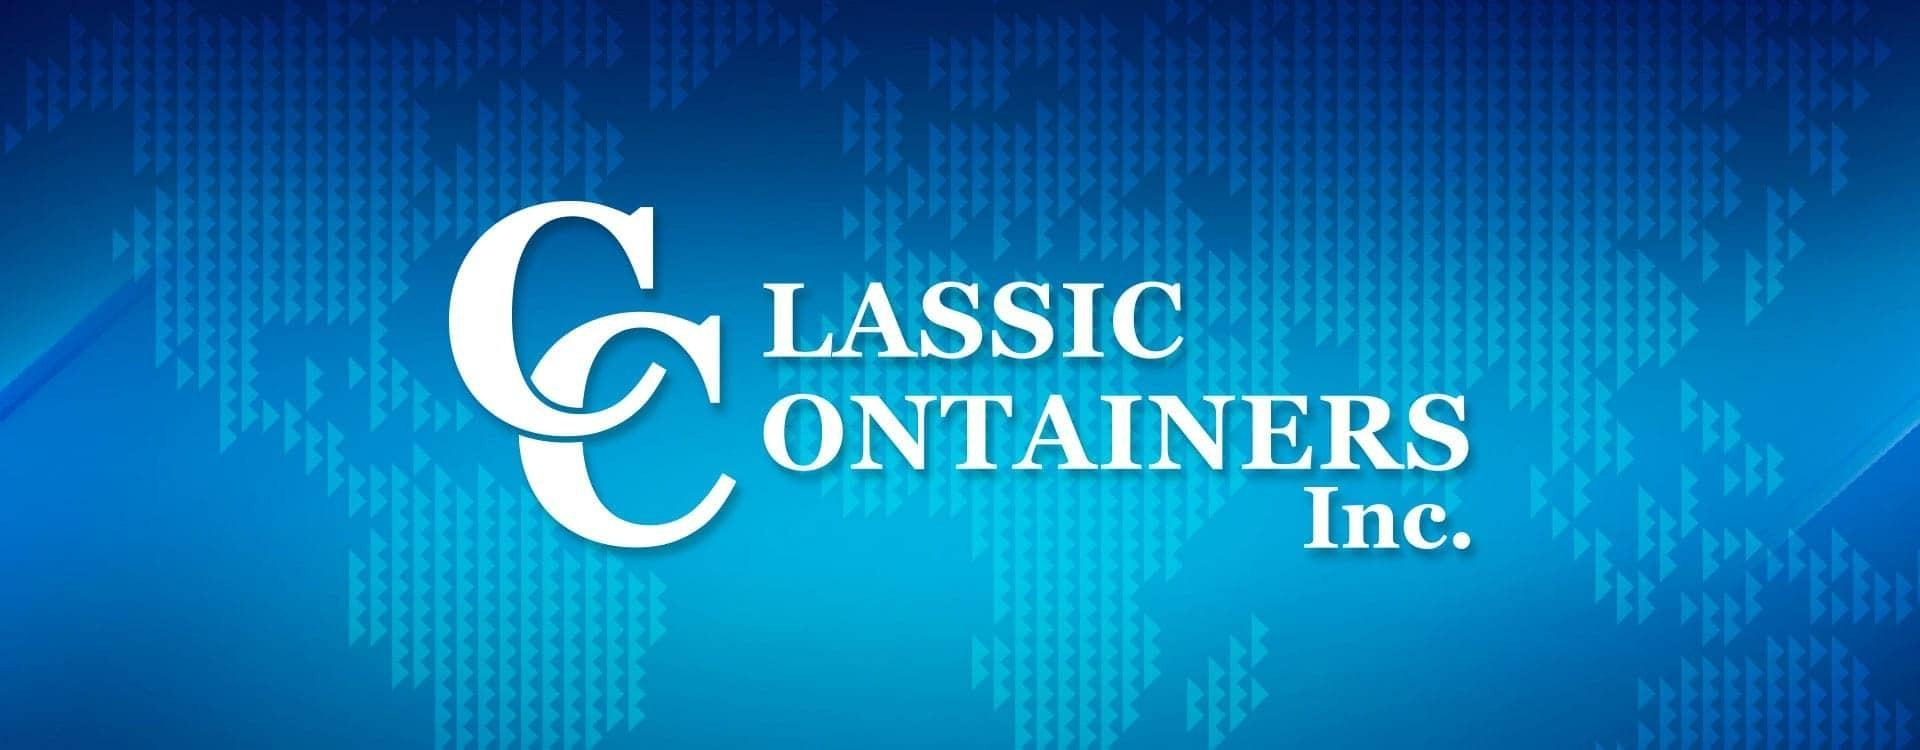 classic_containers